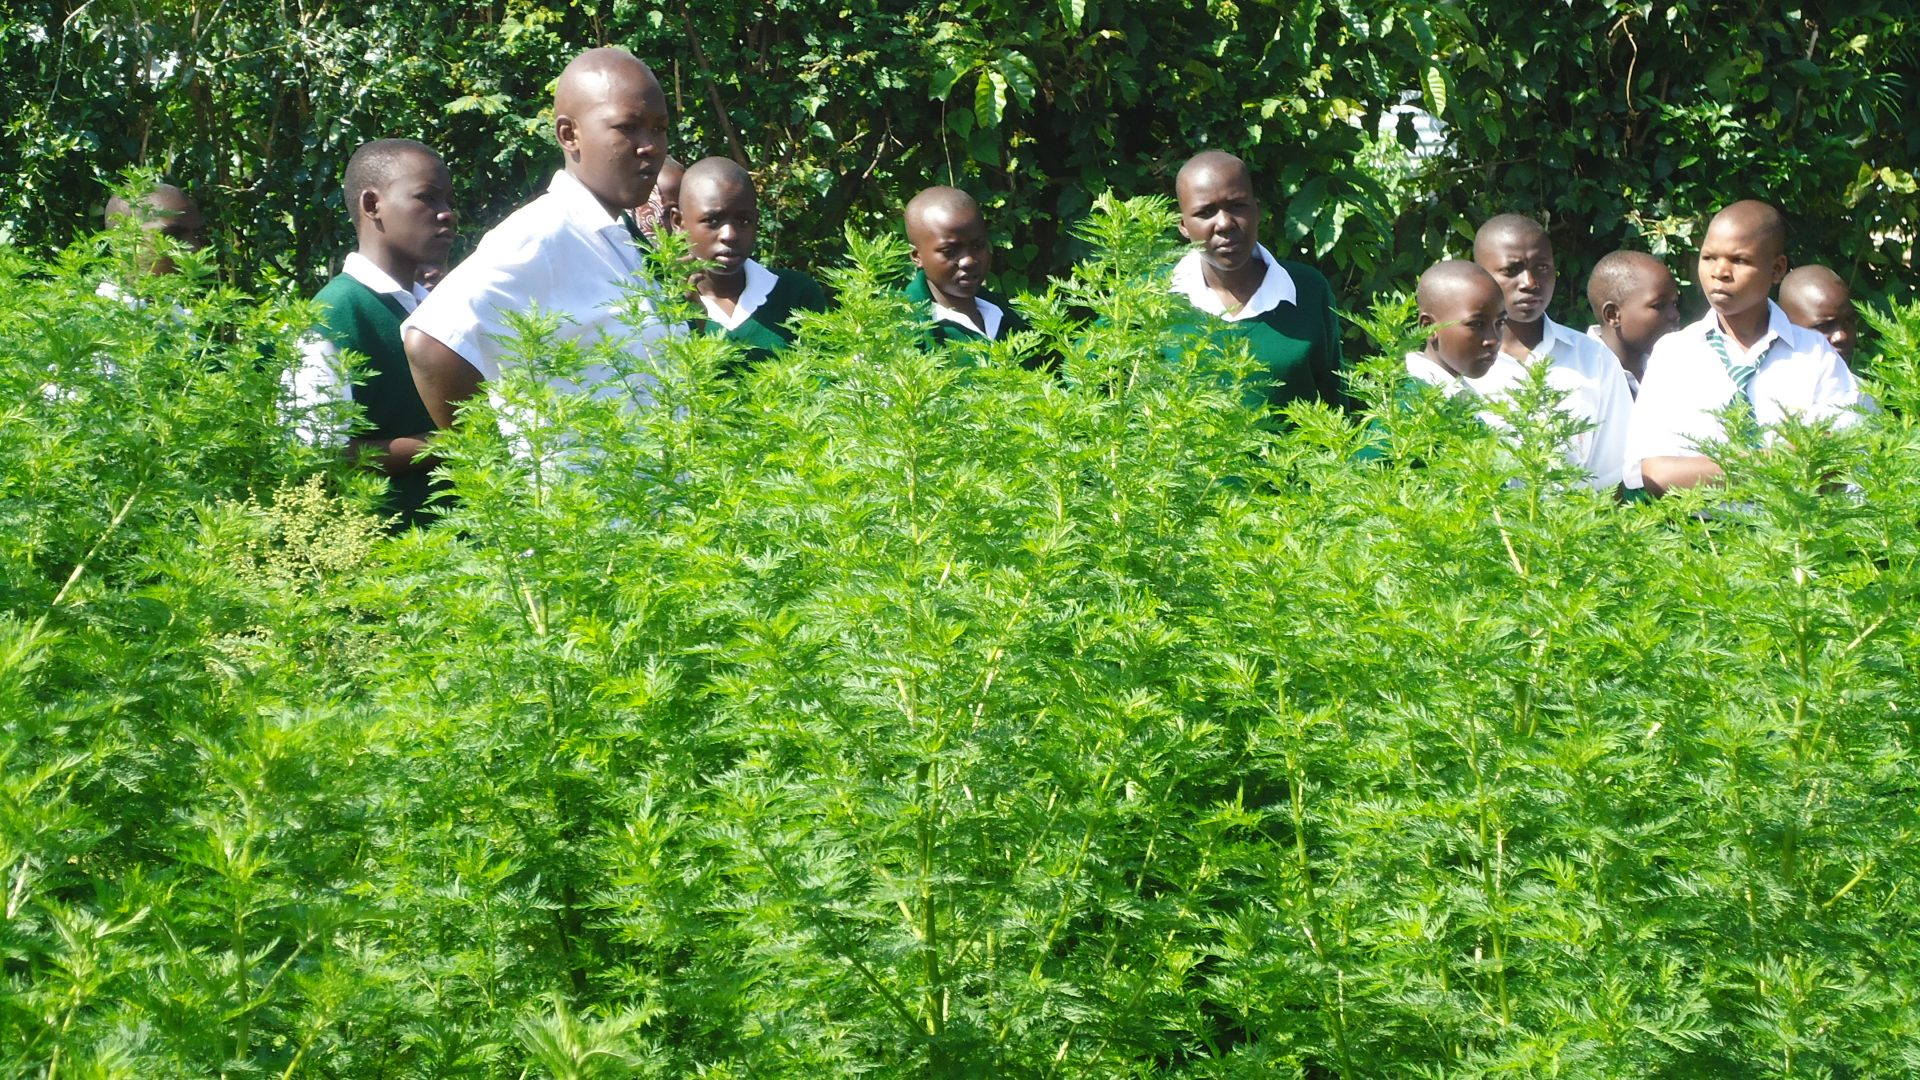 64. Promotion of education quality and health in schools through the establishment of school gardens and kitchens.